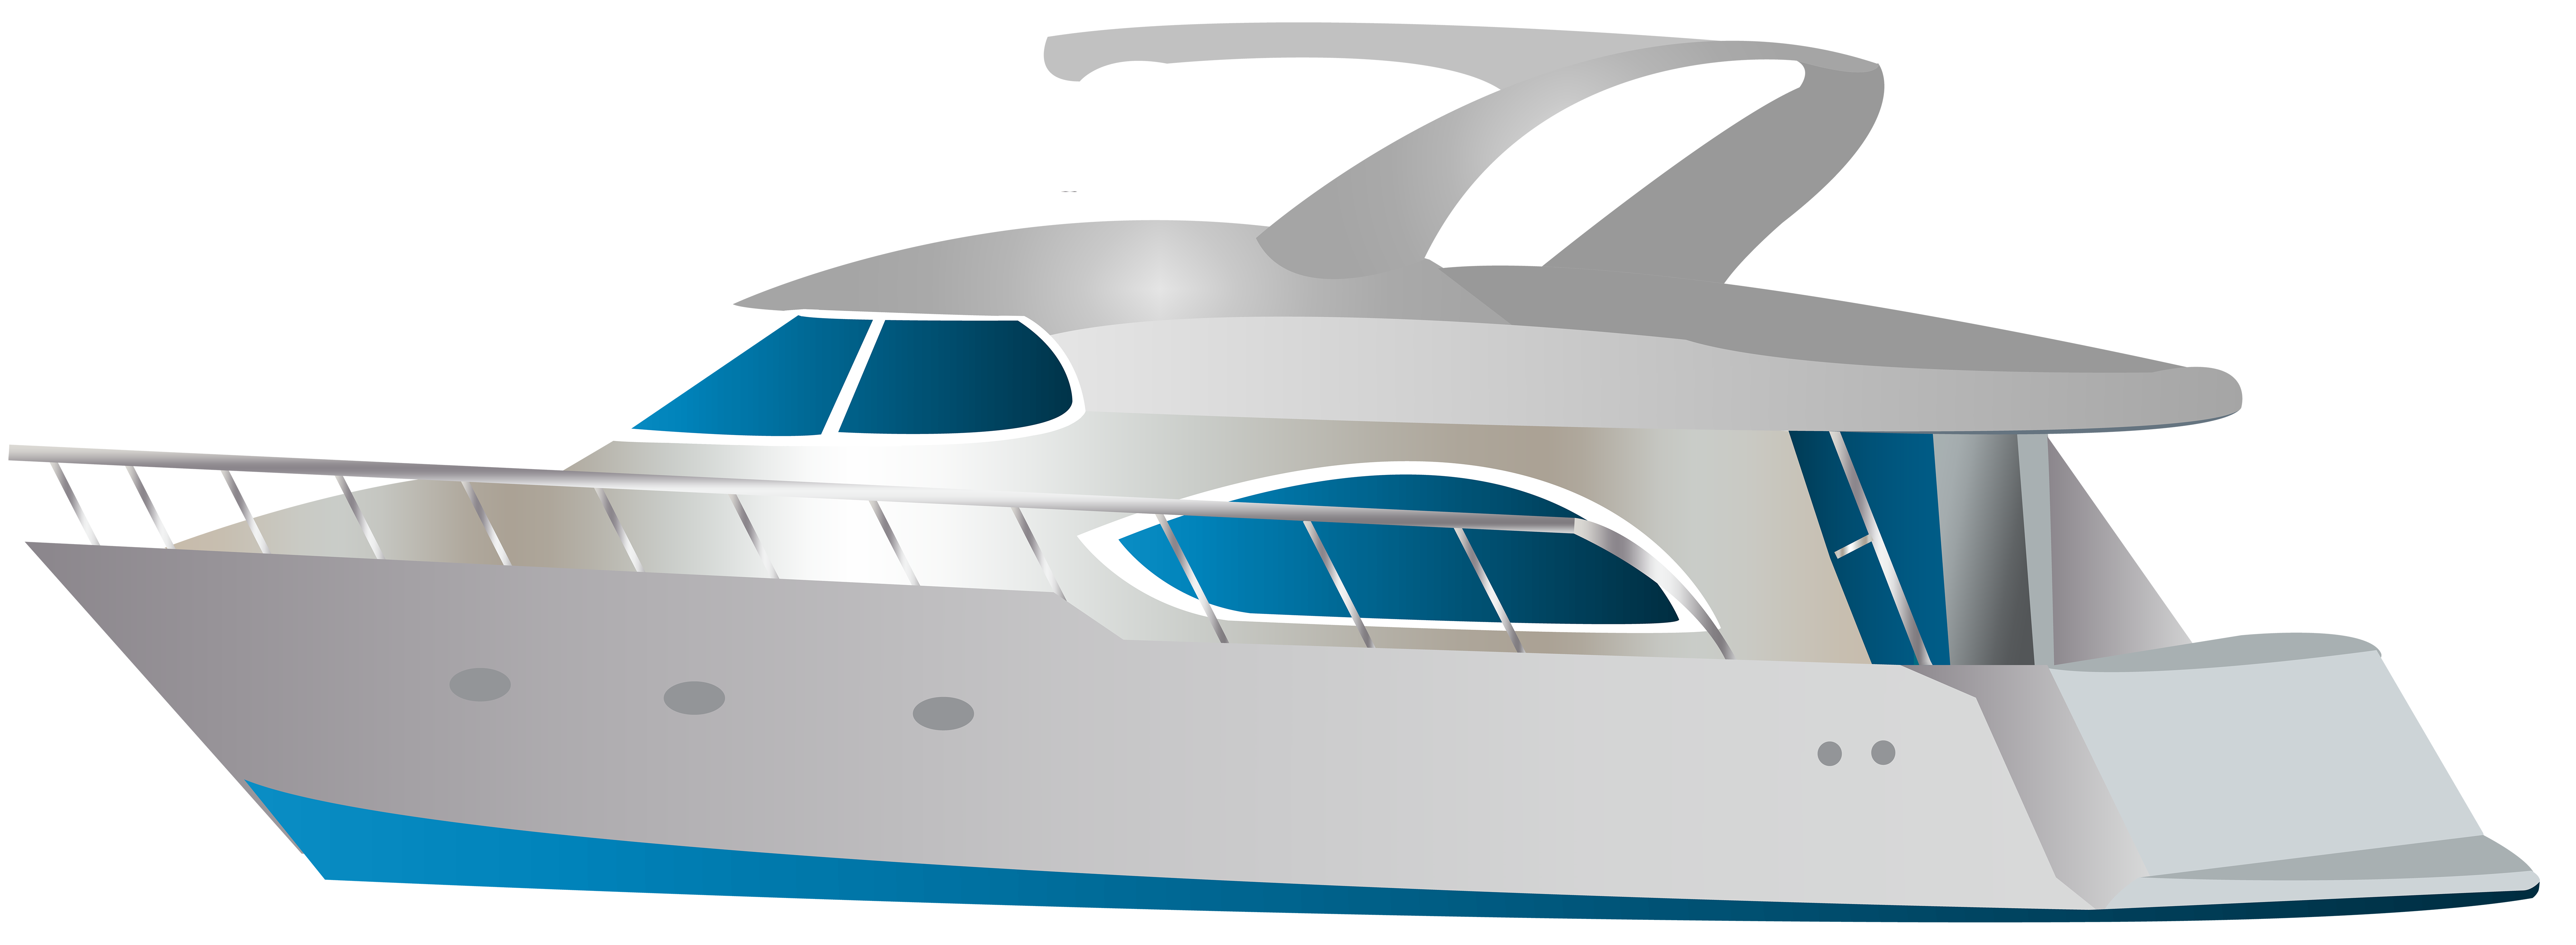 Yacht png free clipart. Speed boat transparent clip